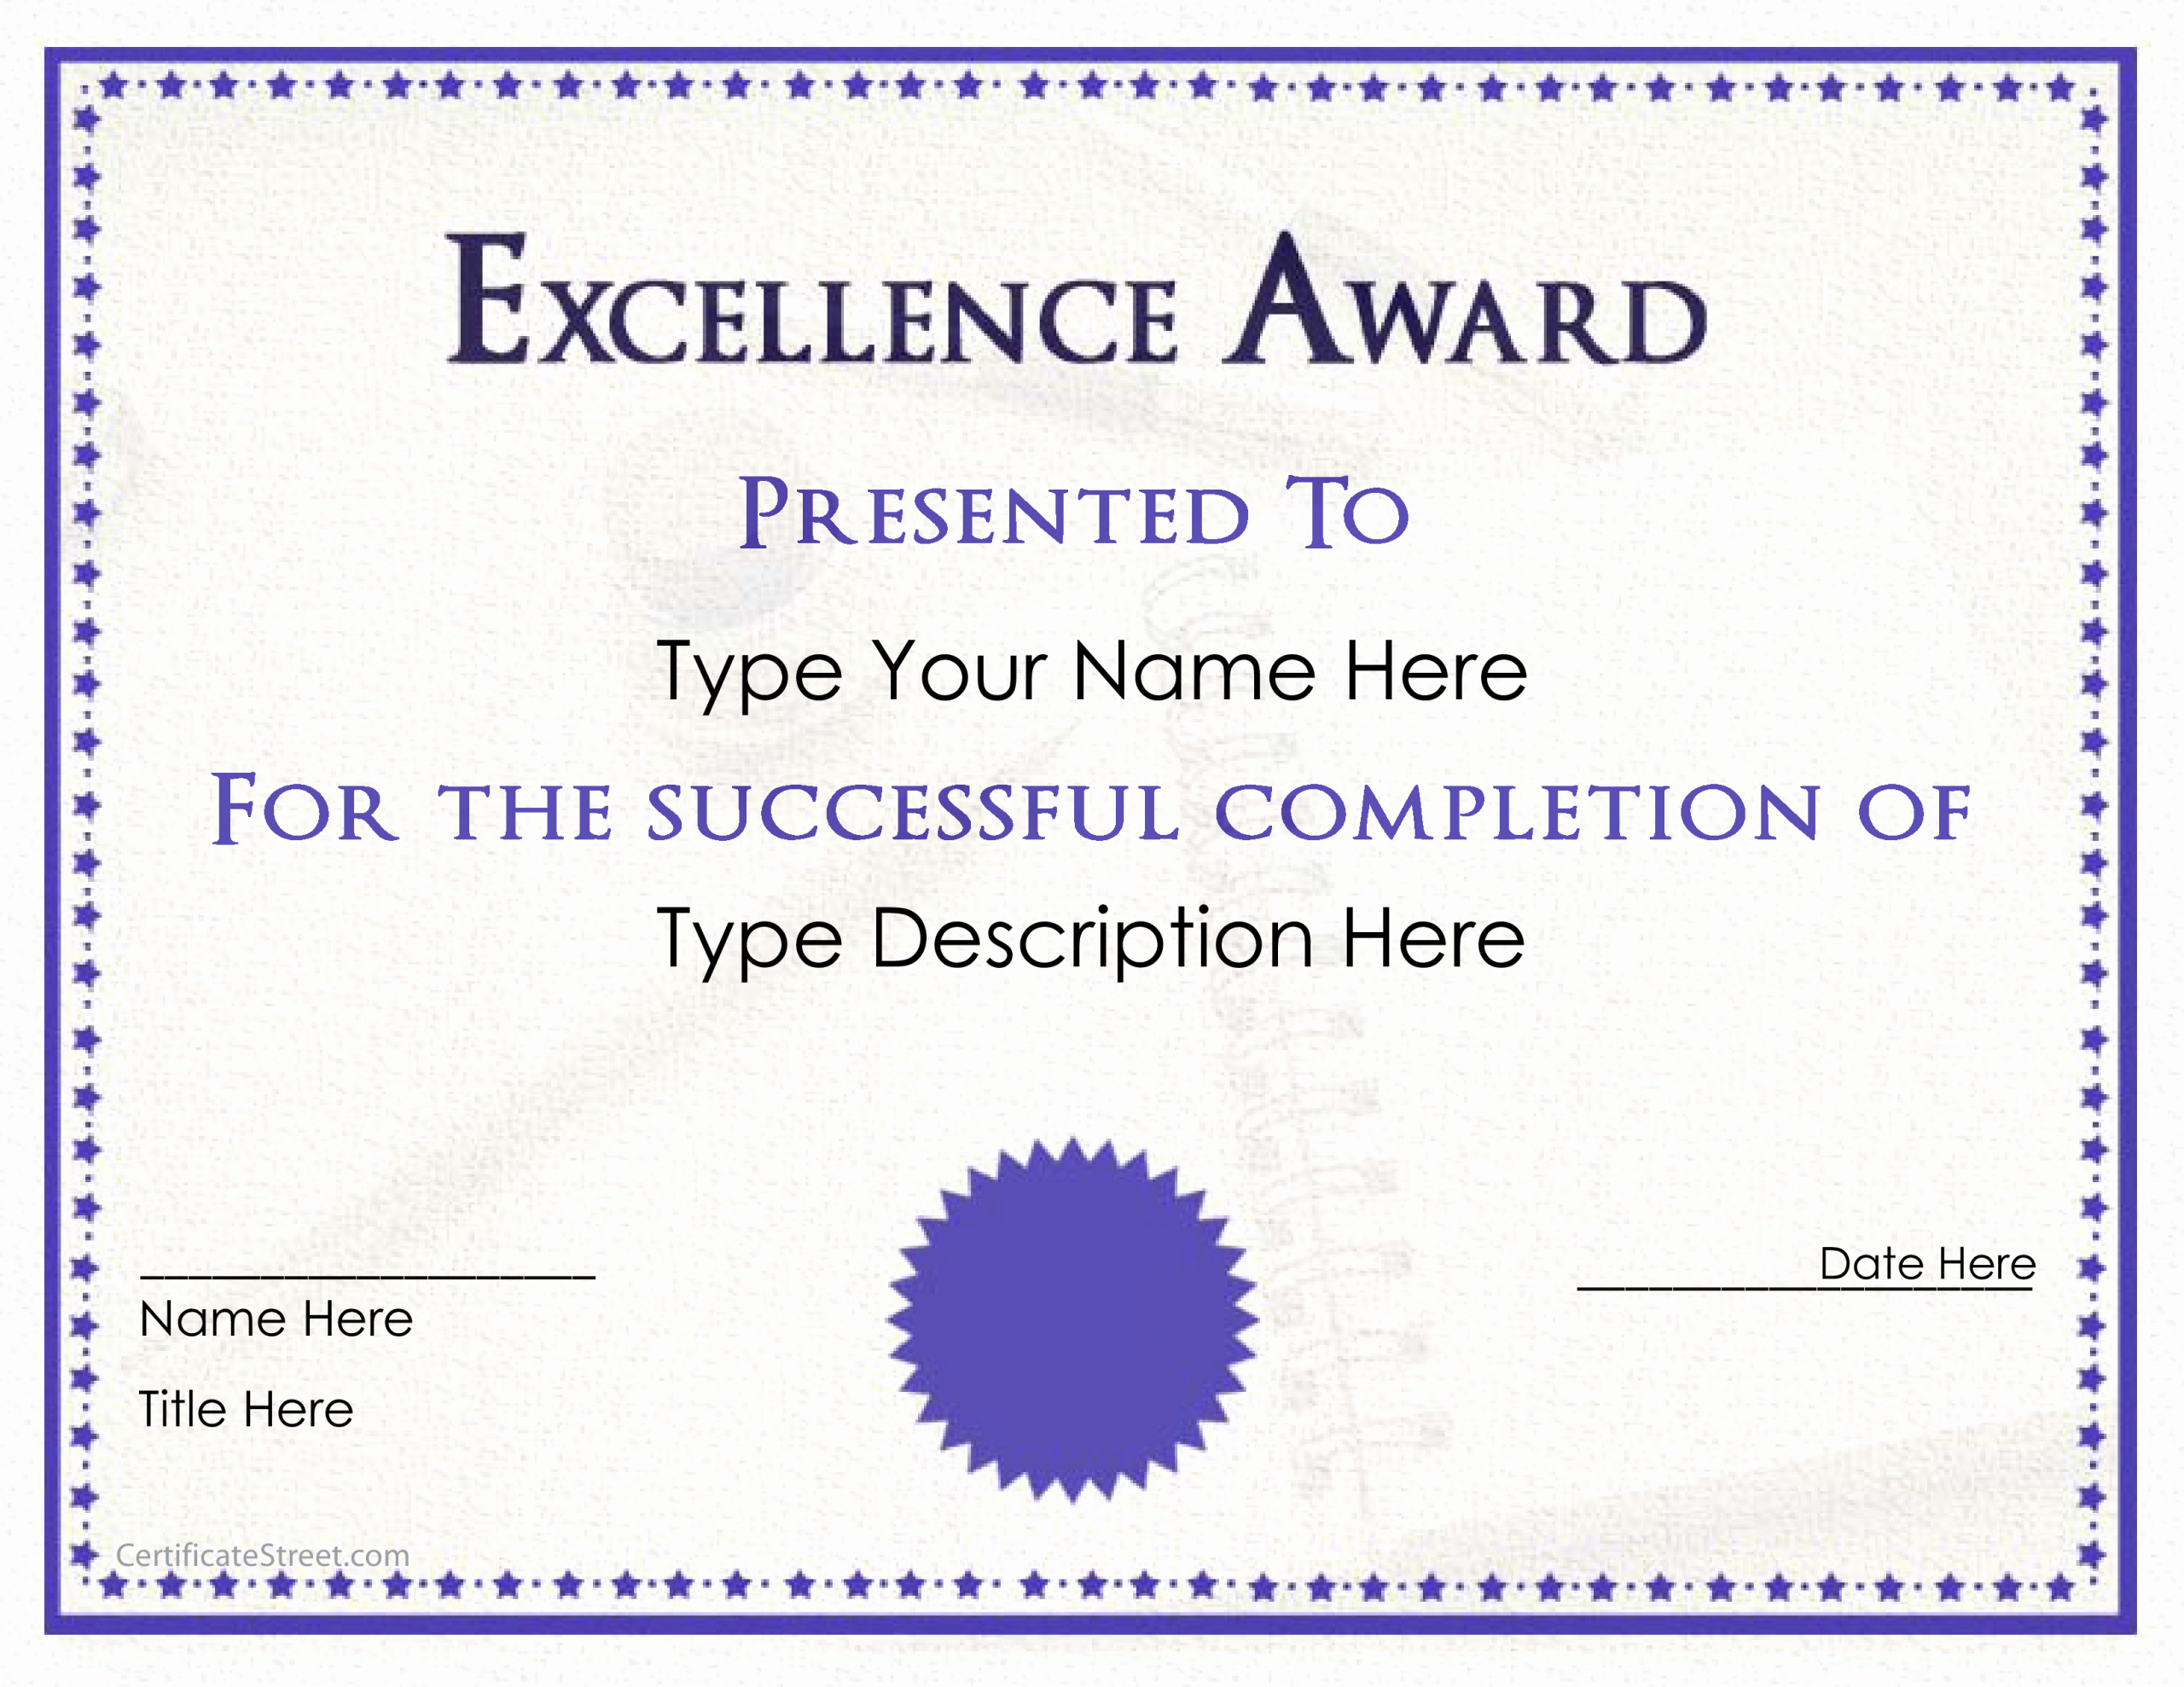 Scholarship Certificate Templates Free Beautiful Excellence Award Certificate